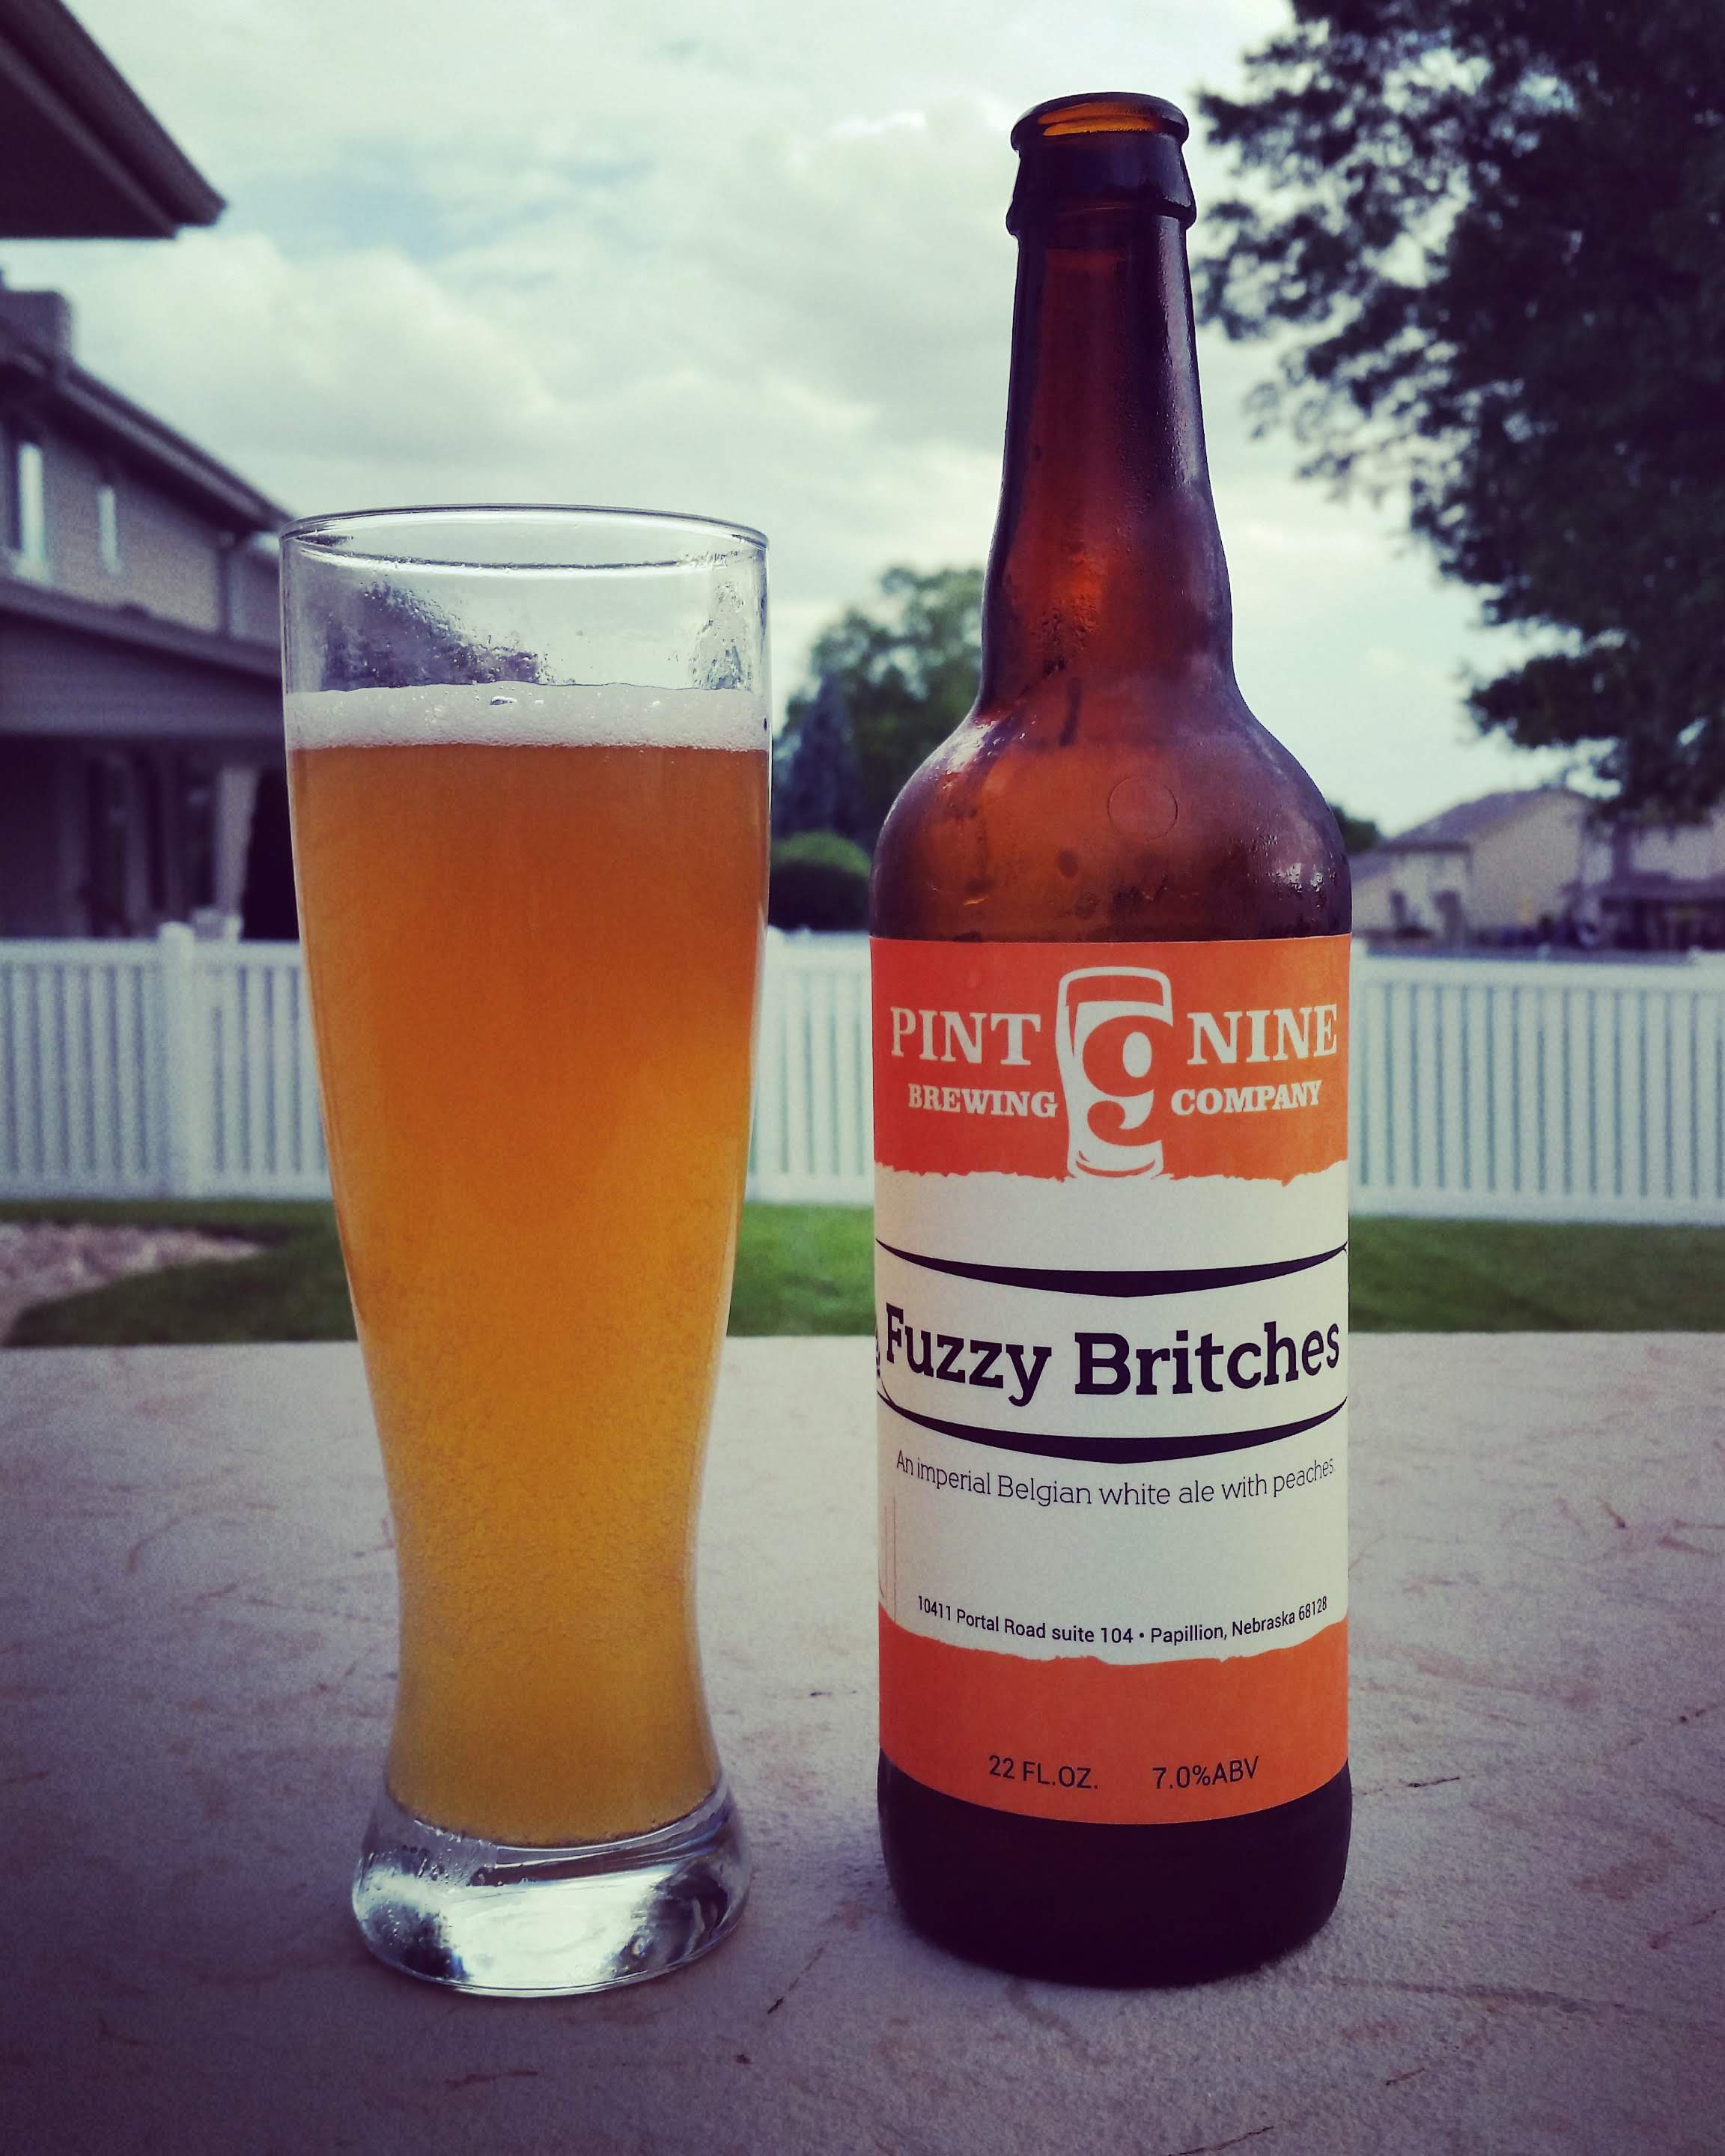 Fuzzy Britches is not only a fun name but a really good beer